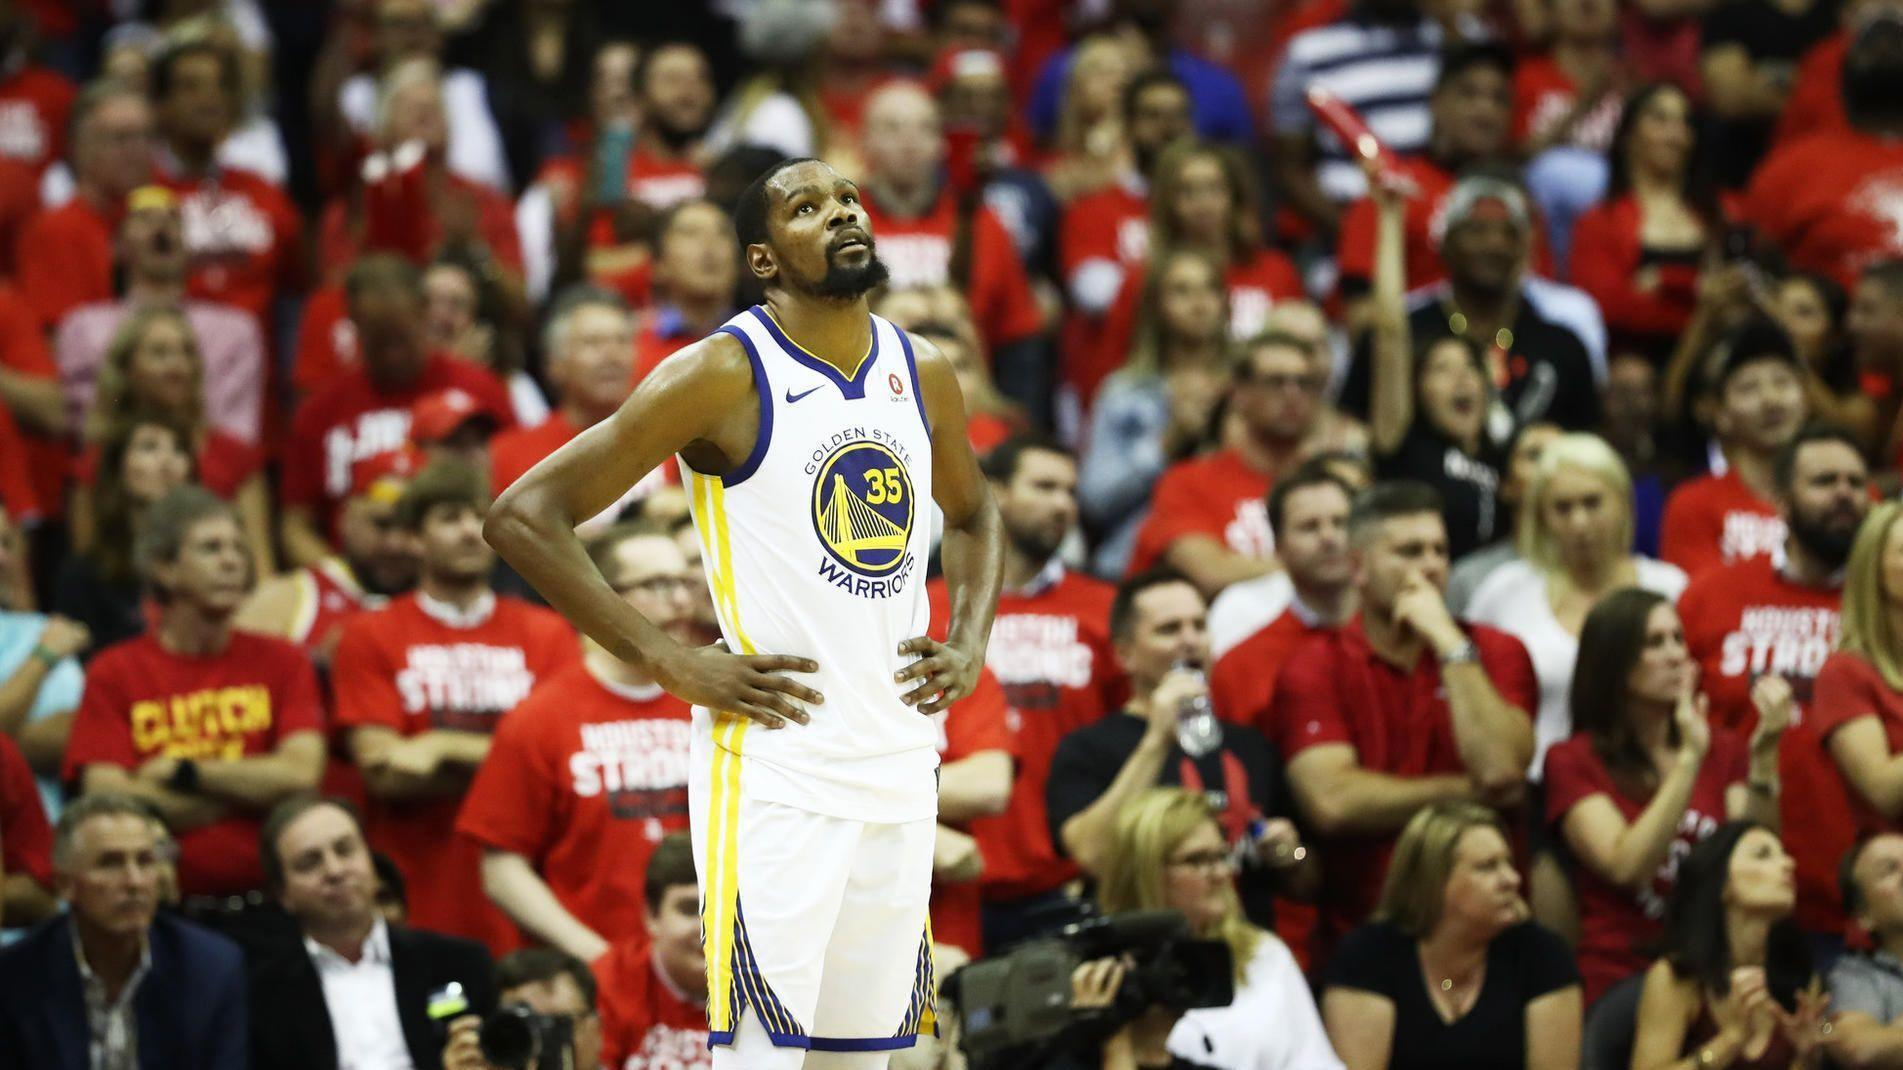 fd7c1ff9e Kevin Durant is reverting to old habits as Warriors get pushed to brink of  elimination